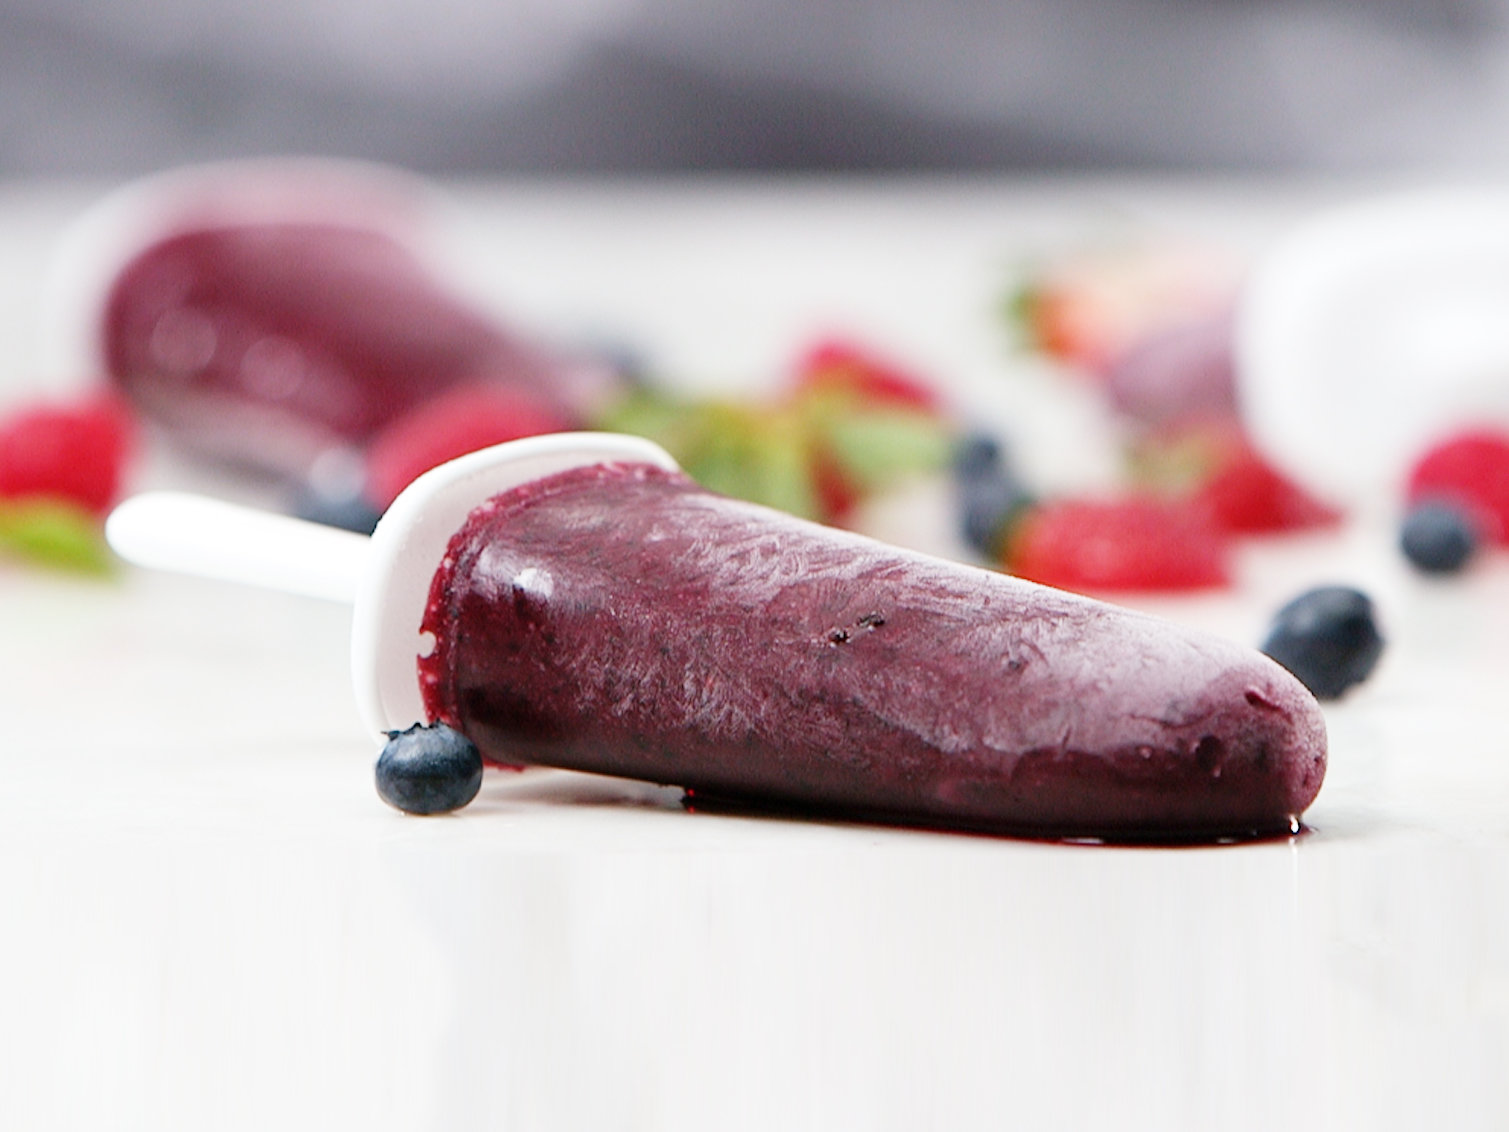 popsicle-three-healthy-recipes-video